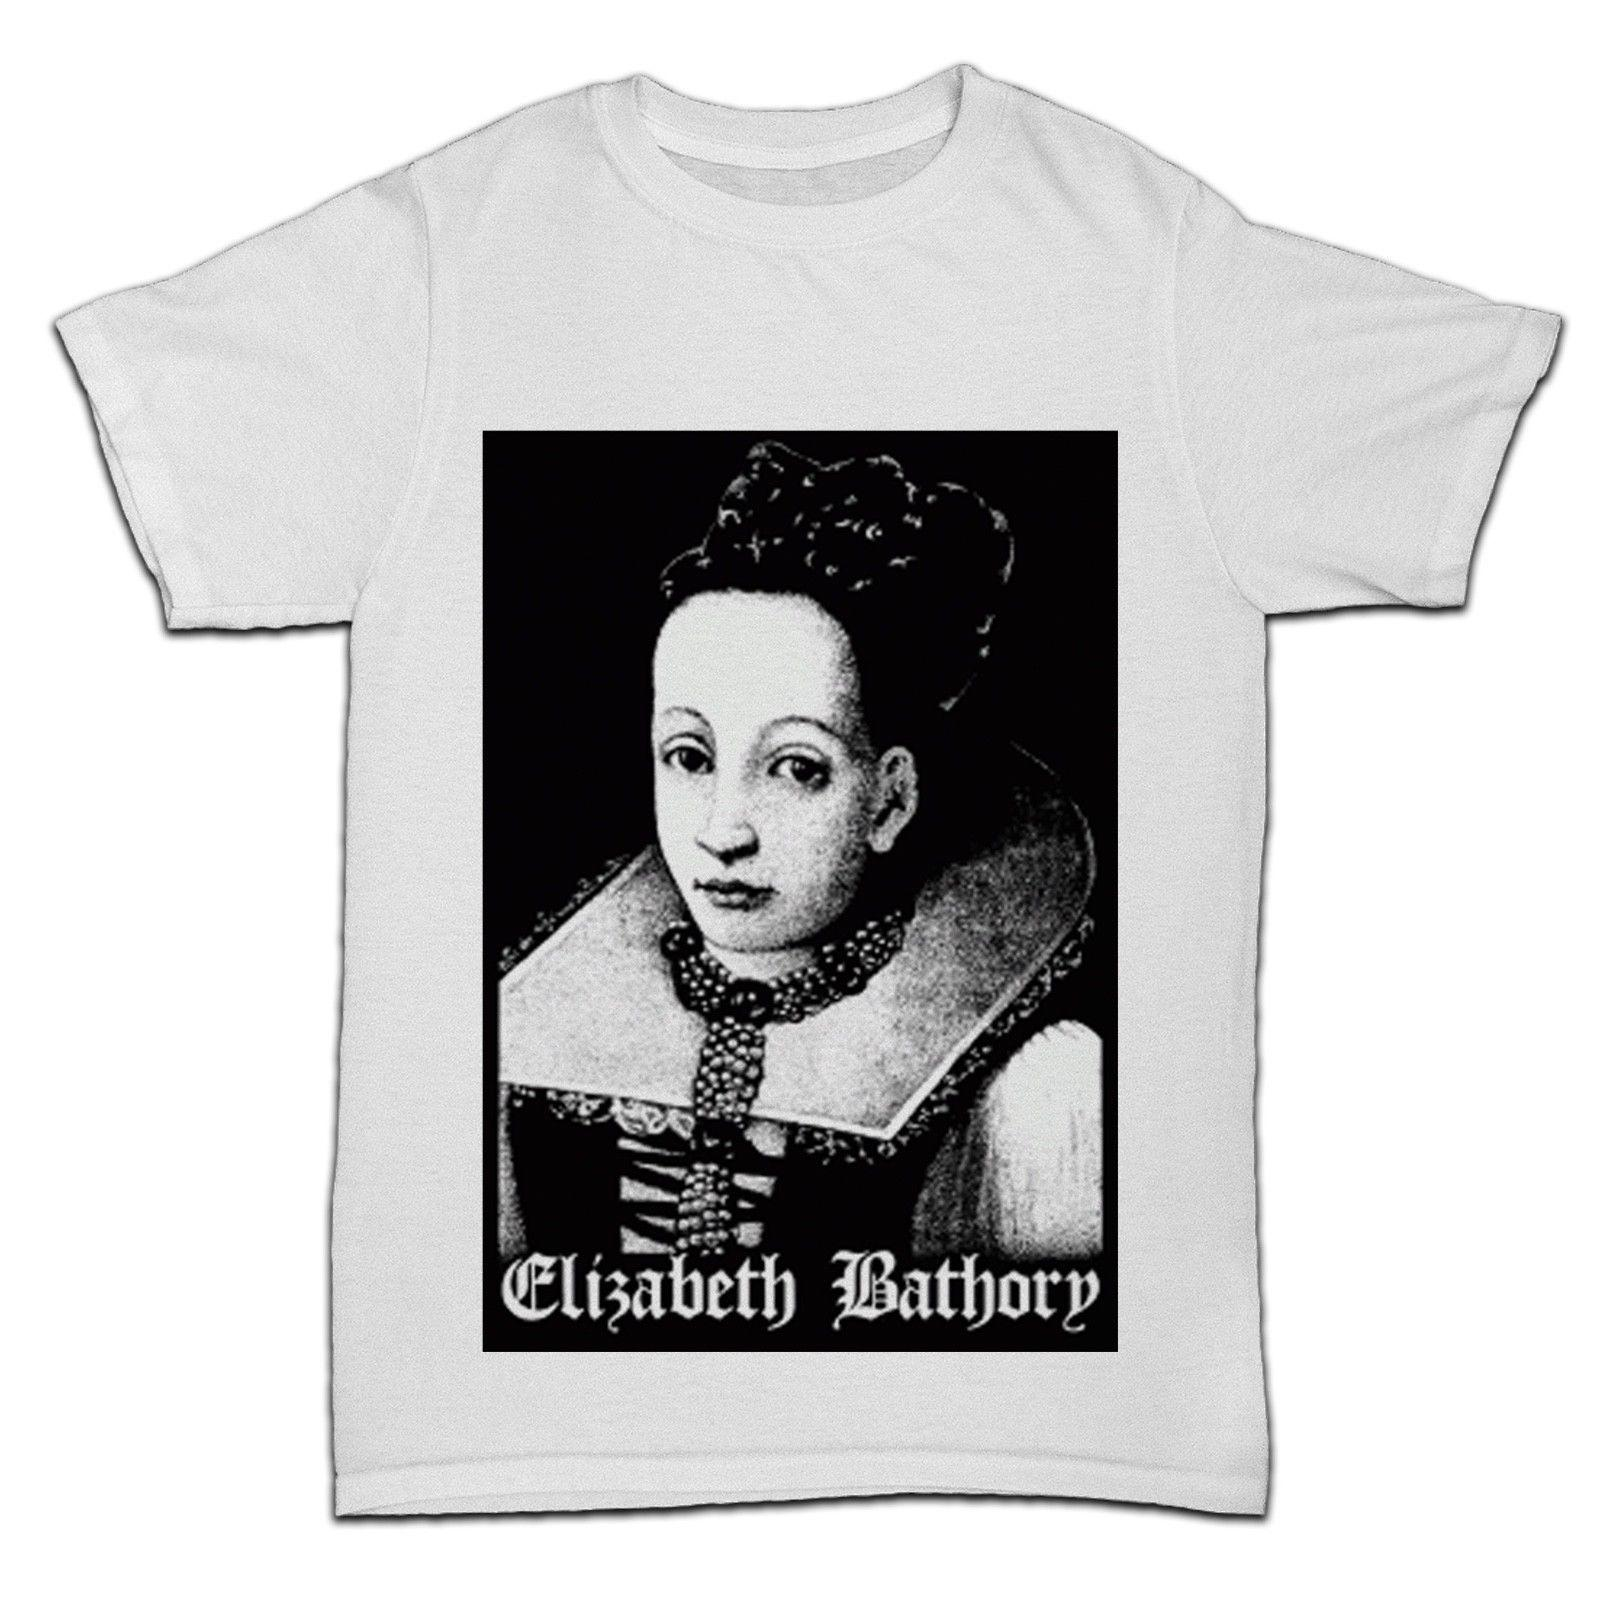 5a23f15e ELIZABETH BATHORY FRIGHT NIGHT MOVIE FILM GOTHIC METAL ROCKER HORROR VAMPIRE  Jersey Print T Shirt Brand Shirts Jeans Print Funny Graphic T Shirts Funny T  ...